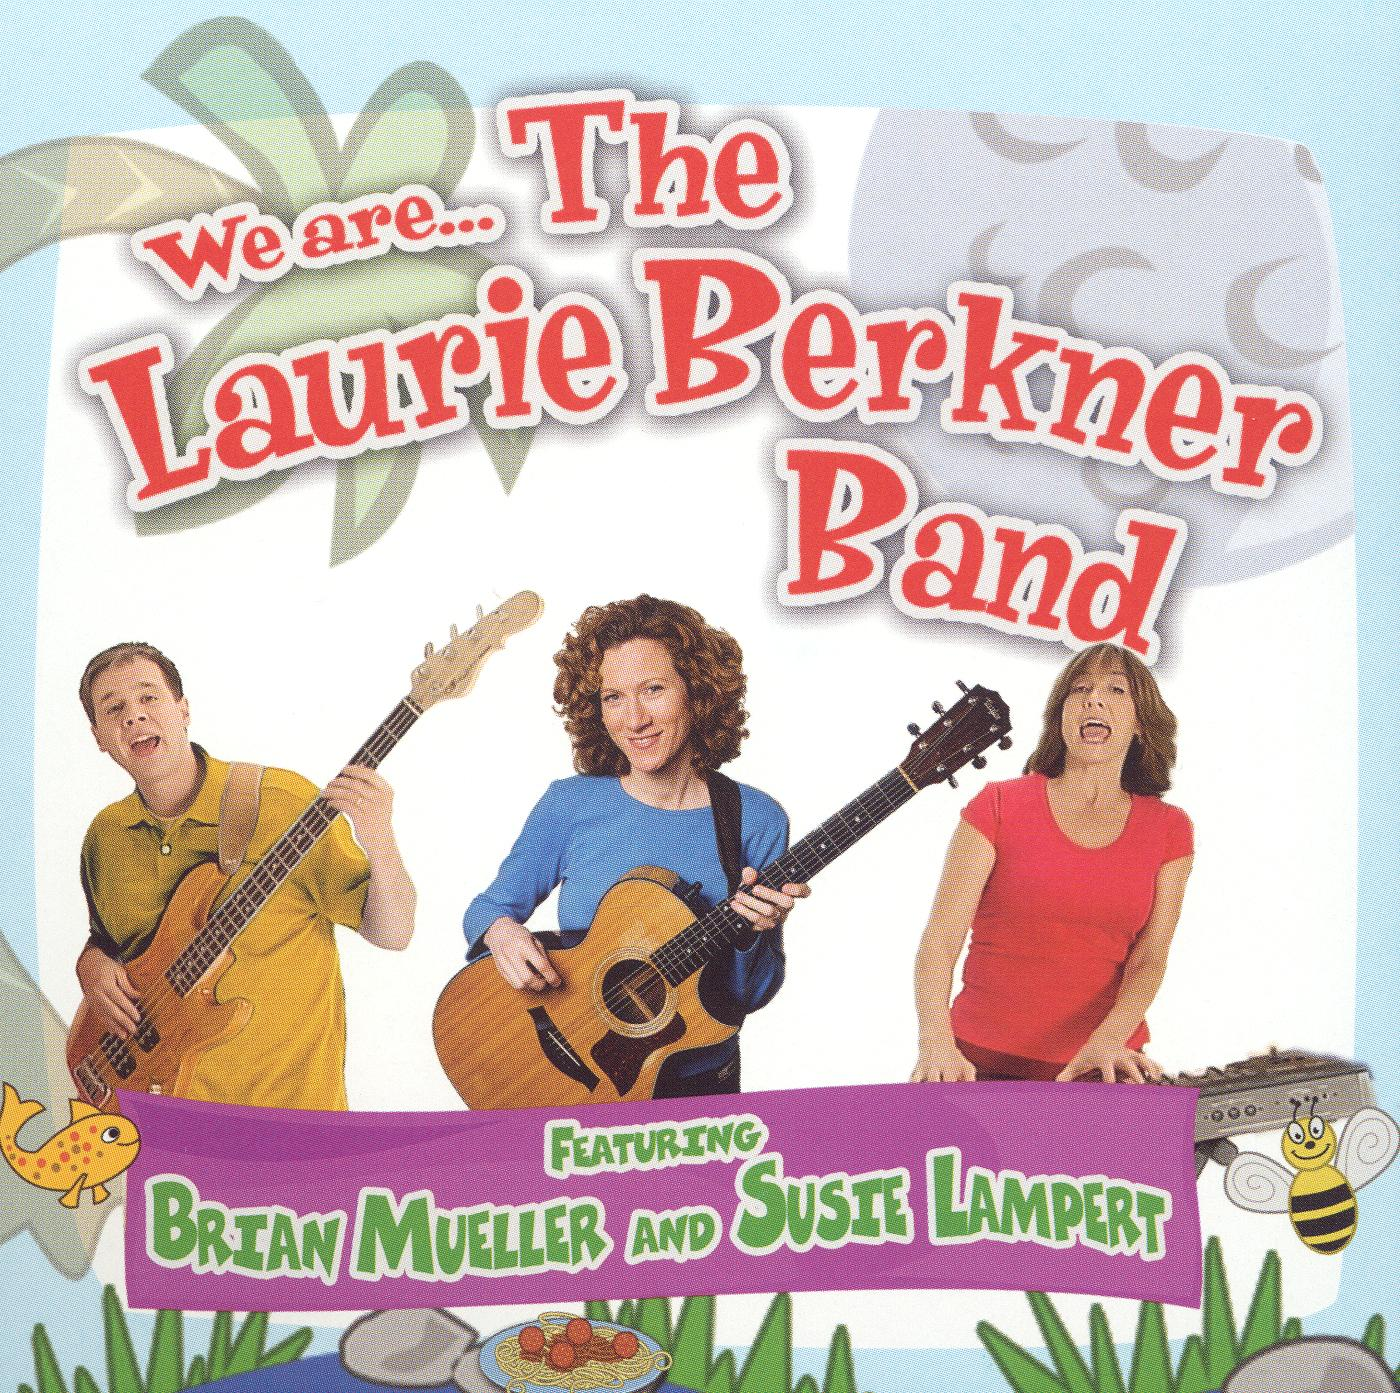 The Laurie Berkner Band: We Are... the Laurie Berkner Band